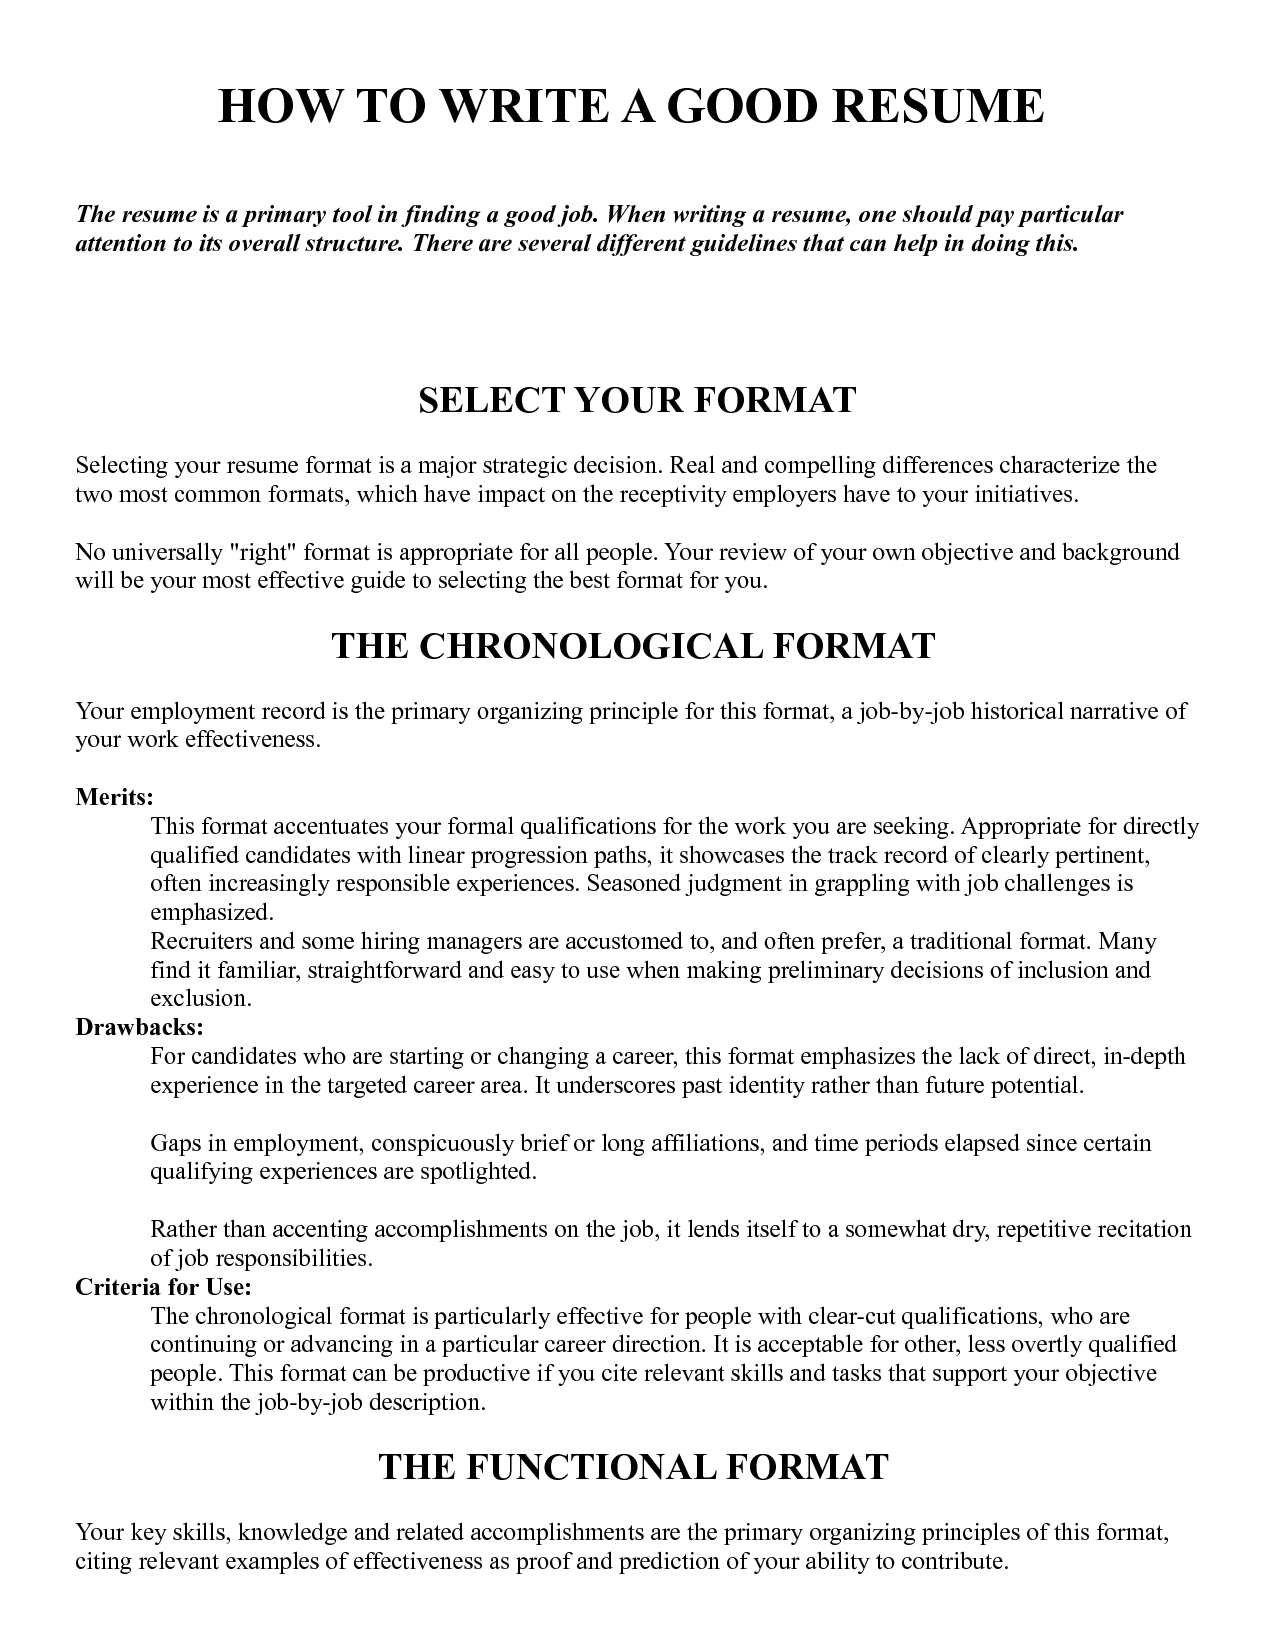 How To Write A Good Resume (pays Attention To Its Overall Structure)